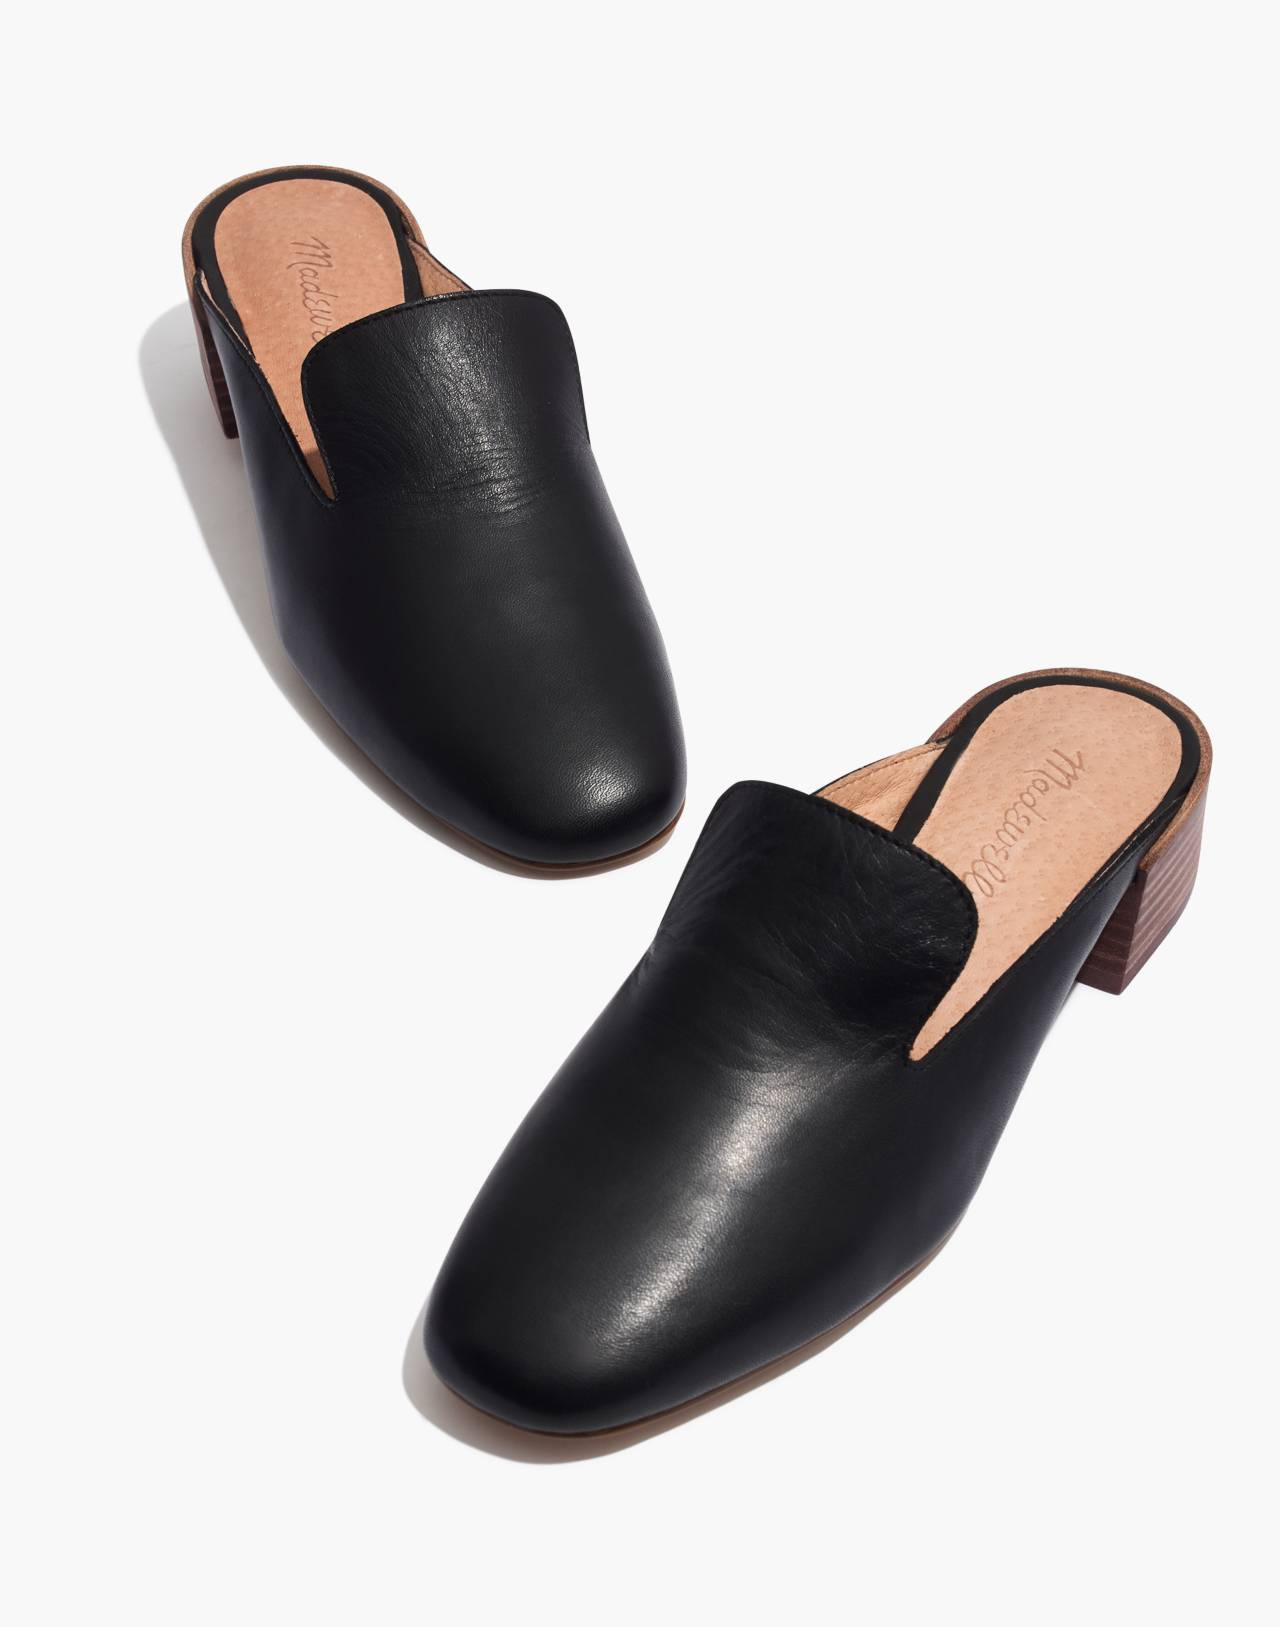 The Willa Loafer Mule in true black image 1